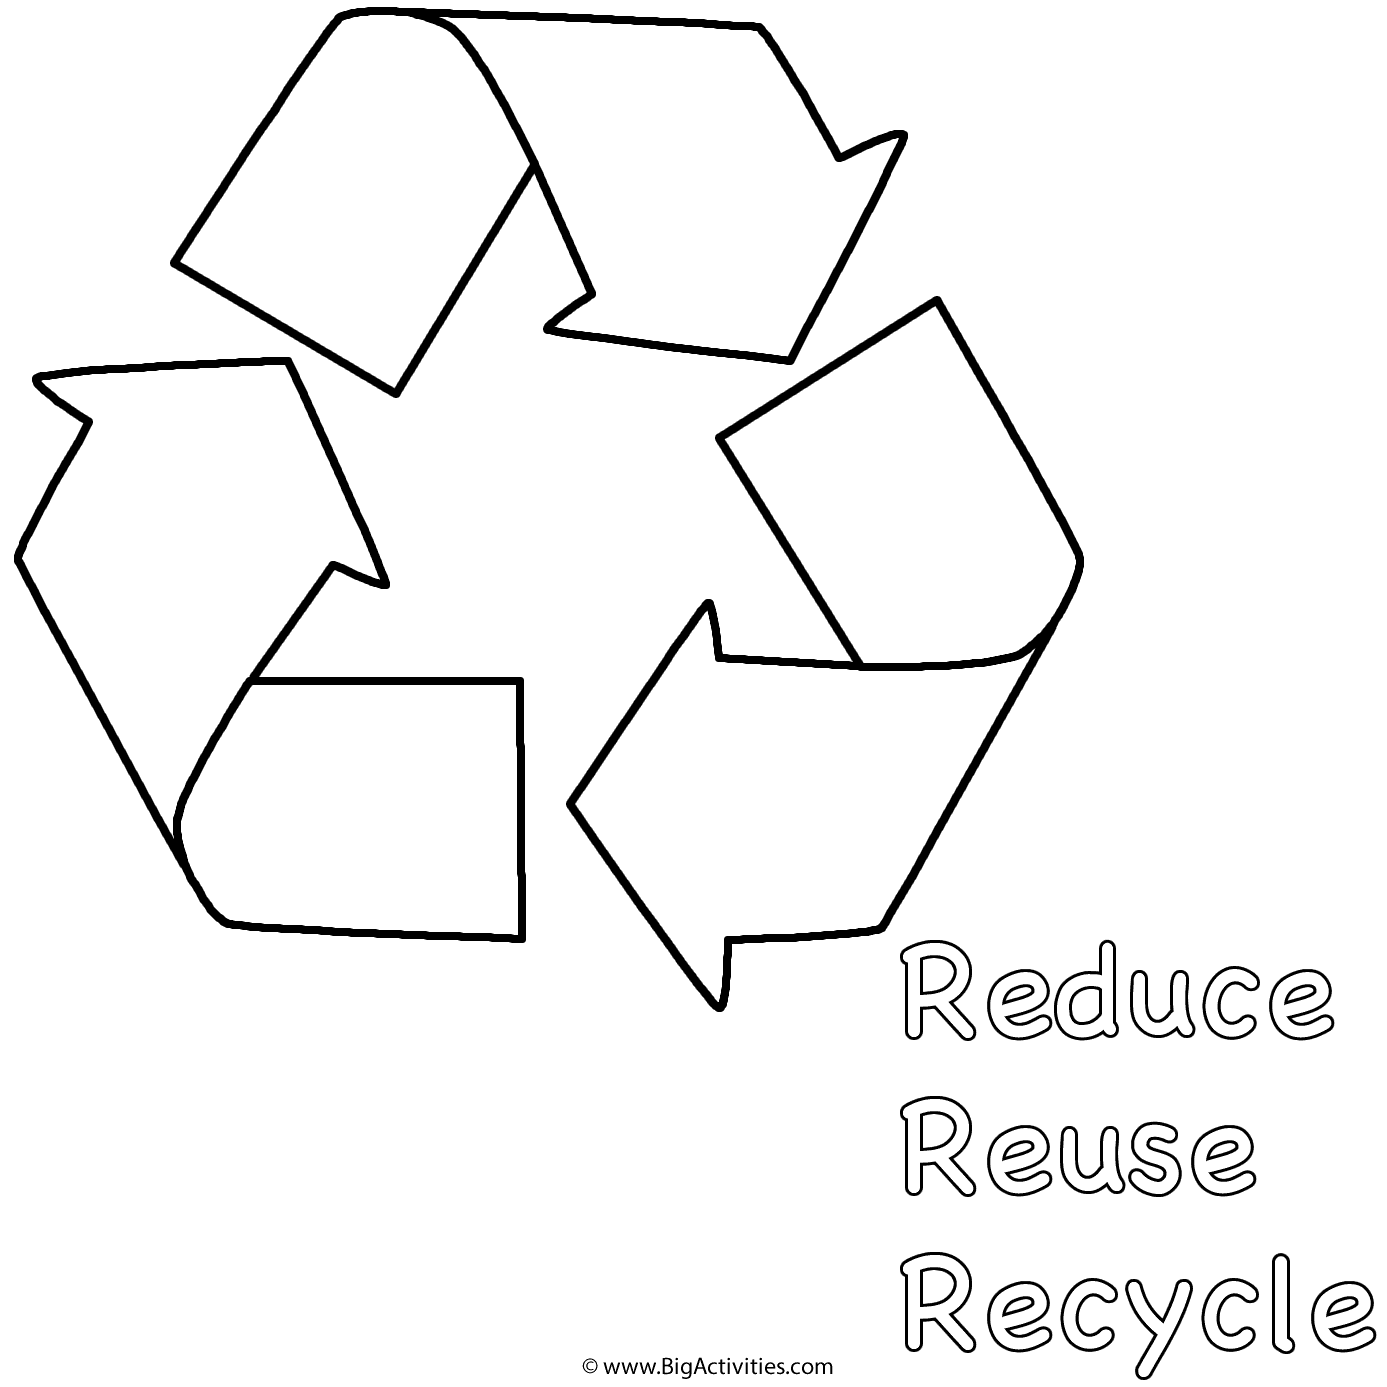 Reduce Reuse Recycle Coloring Pages Coloring Pages